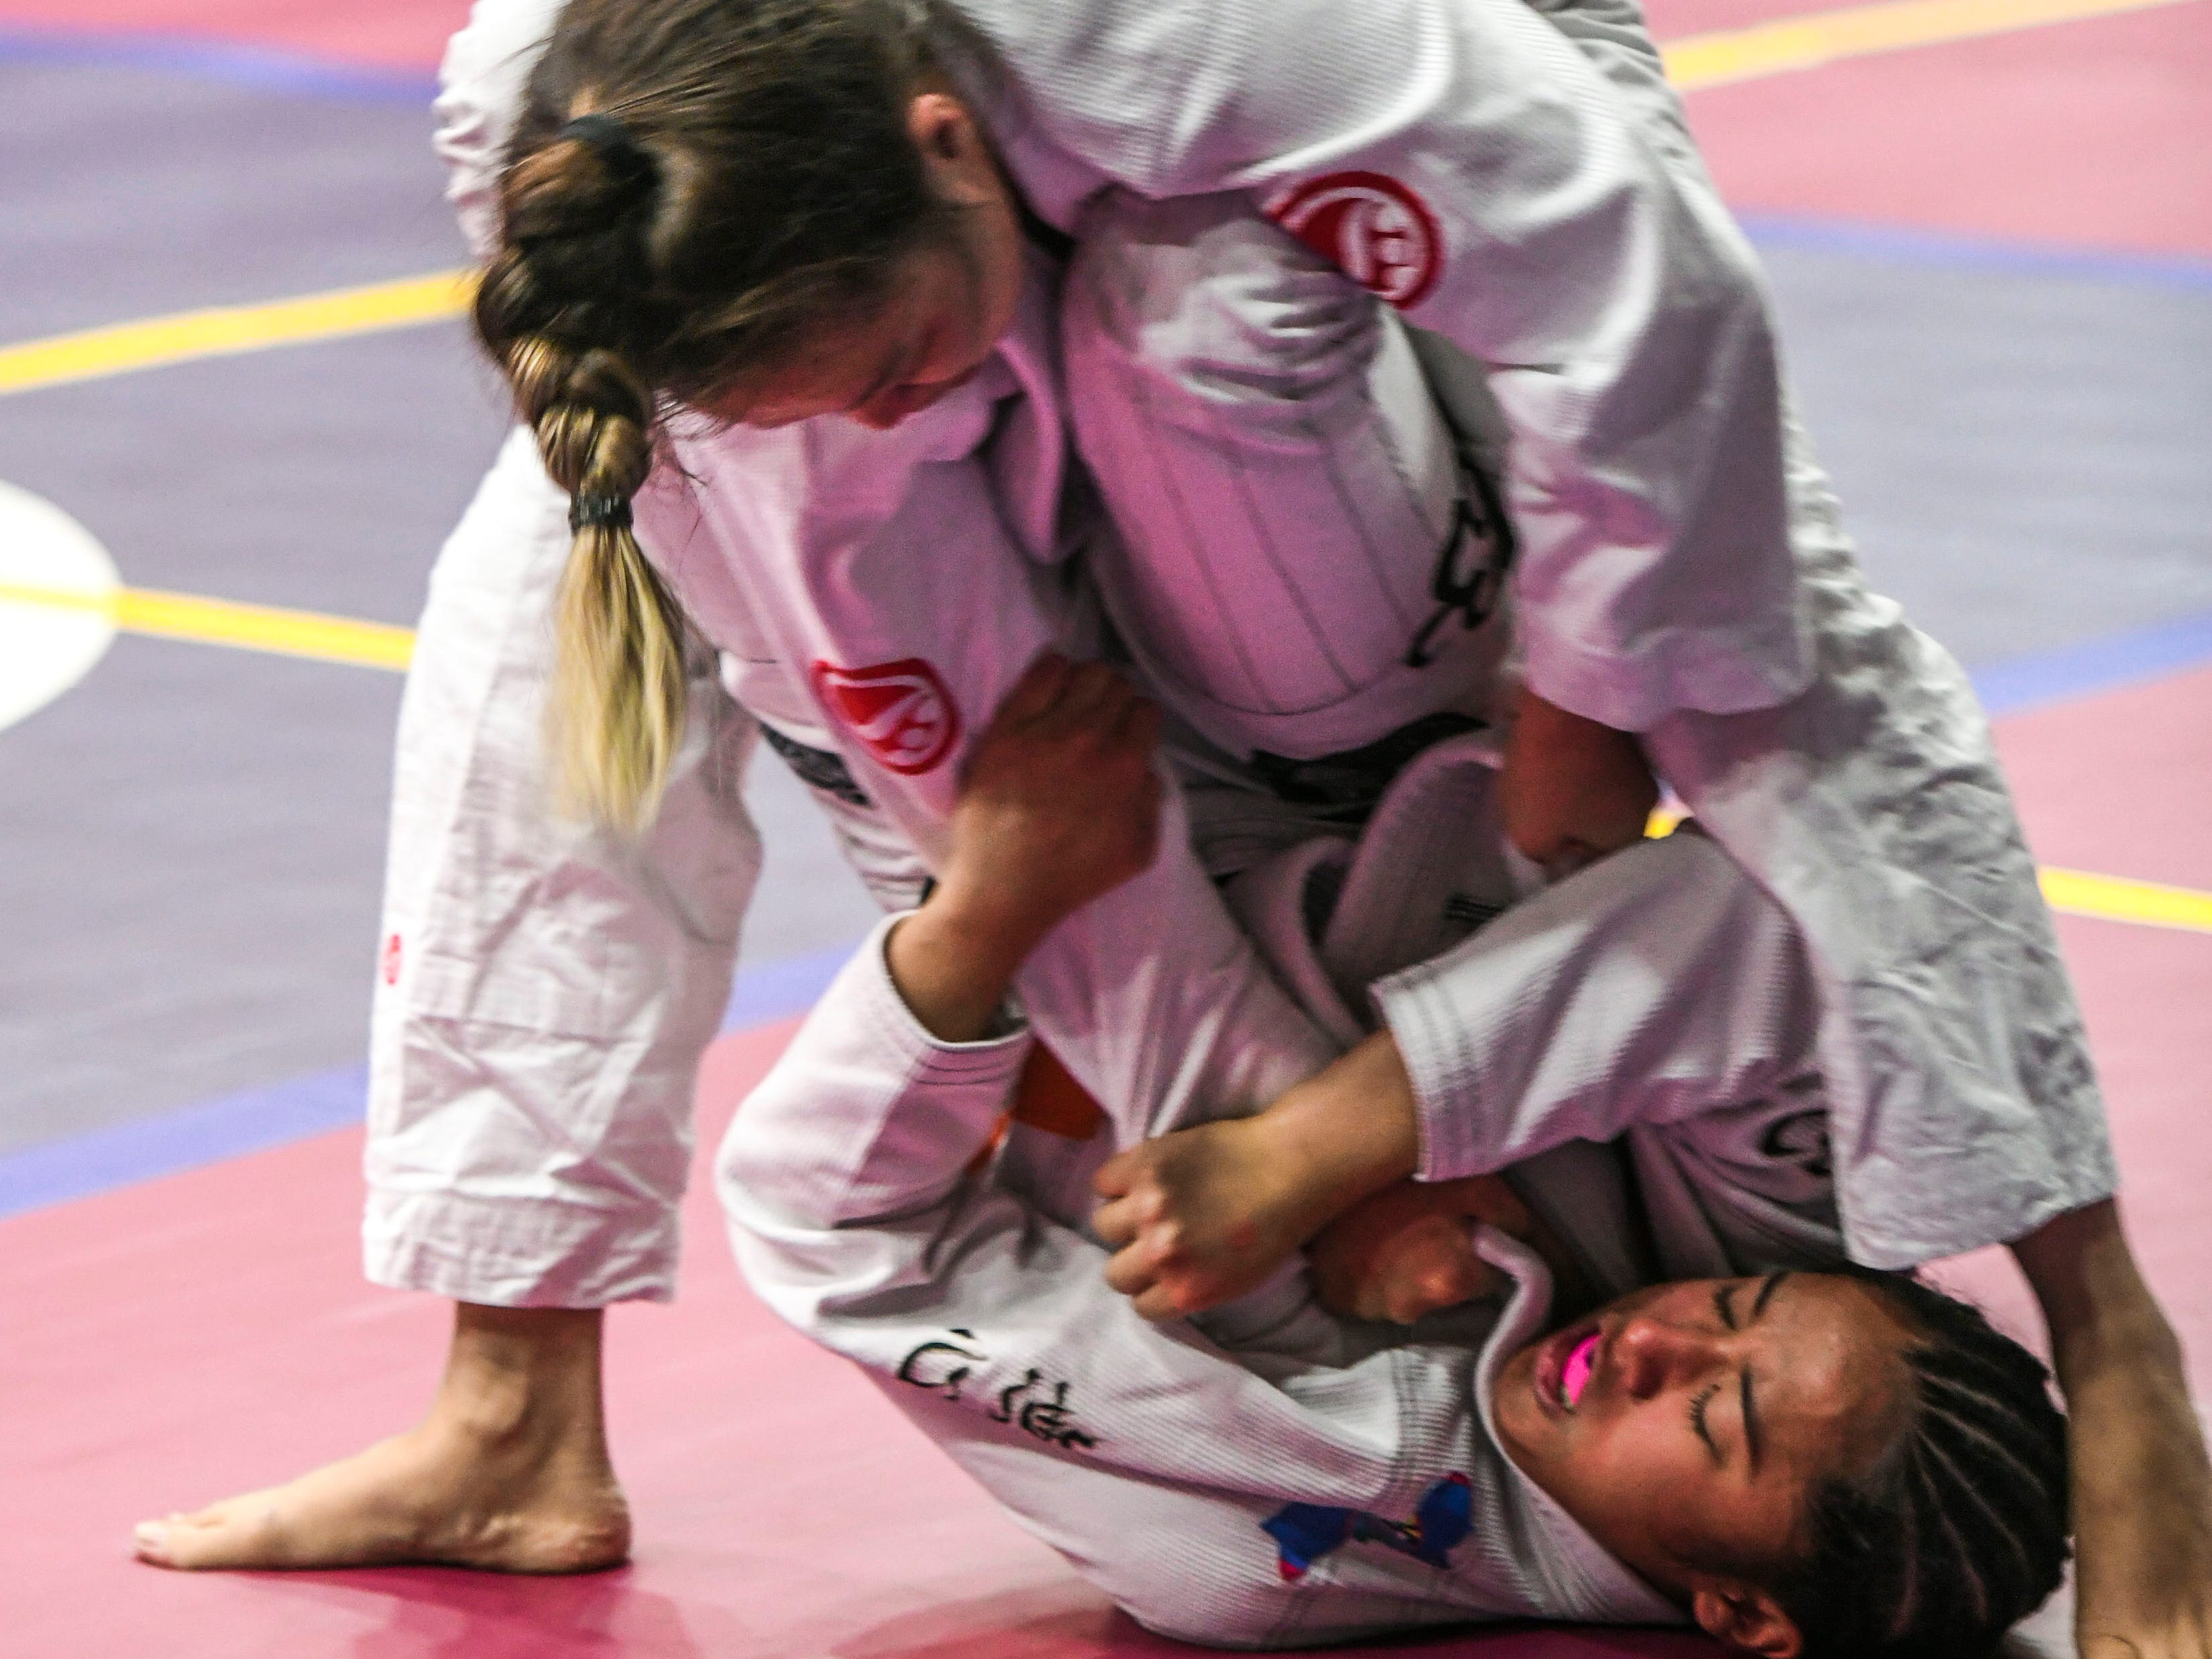 Martial artists, in varying ages and weight divisions, compete against each other during the Copa De Marianas Brazilian Jiujitsu Tournament at the Father Duenas Memorial School's Phoenix Center in Mangilao on Saturday, Jan. 12, 2019.